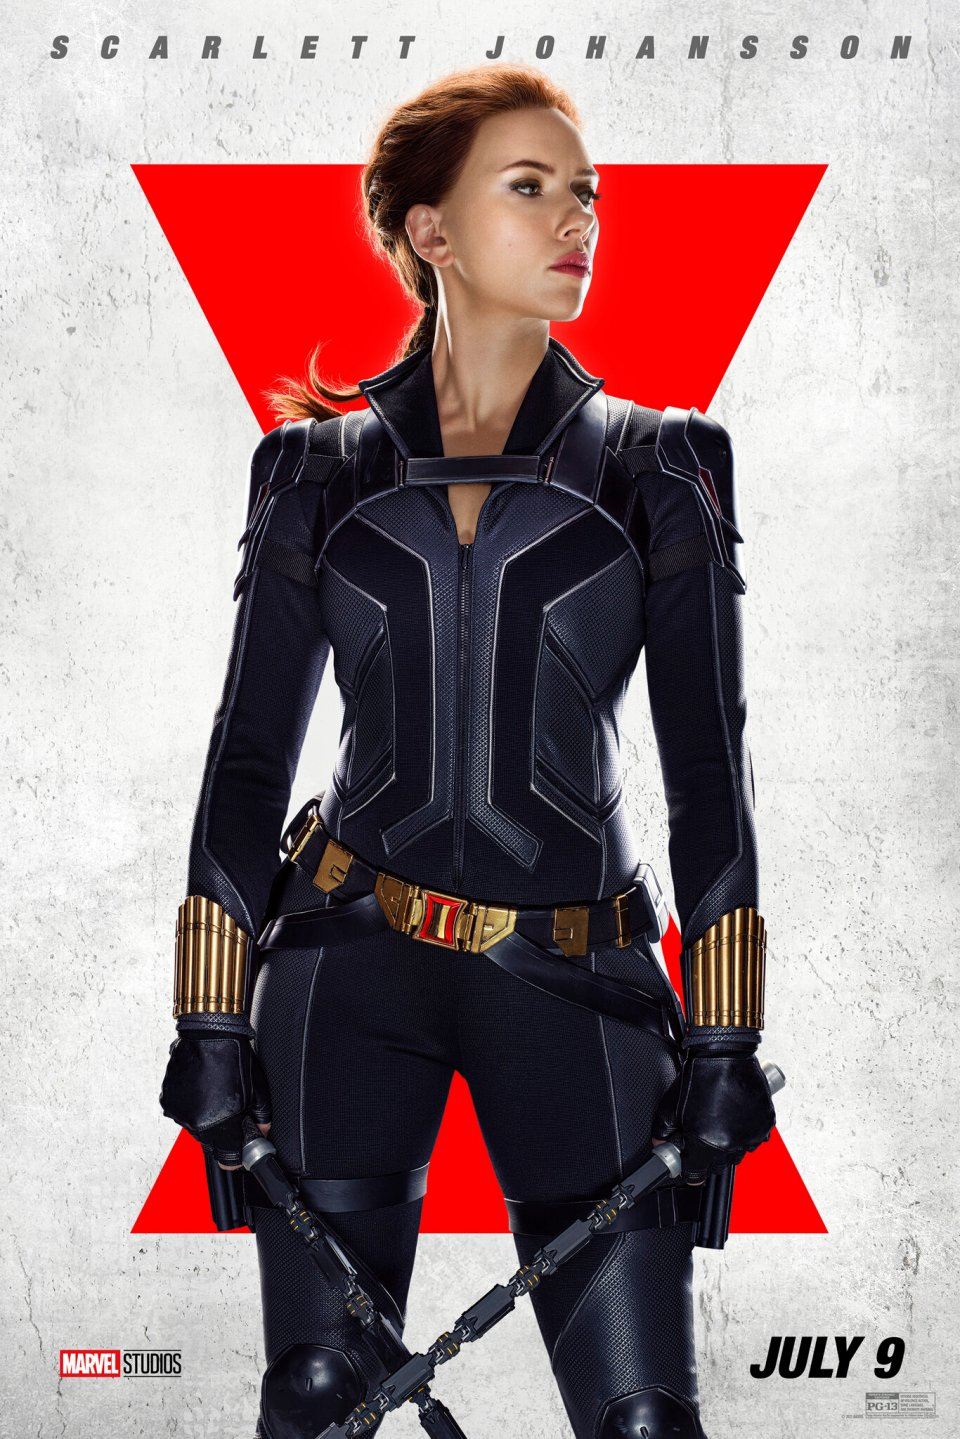 new-character-poster-for-marvels-black-widow1.jpeg